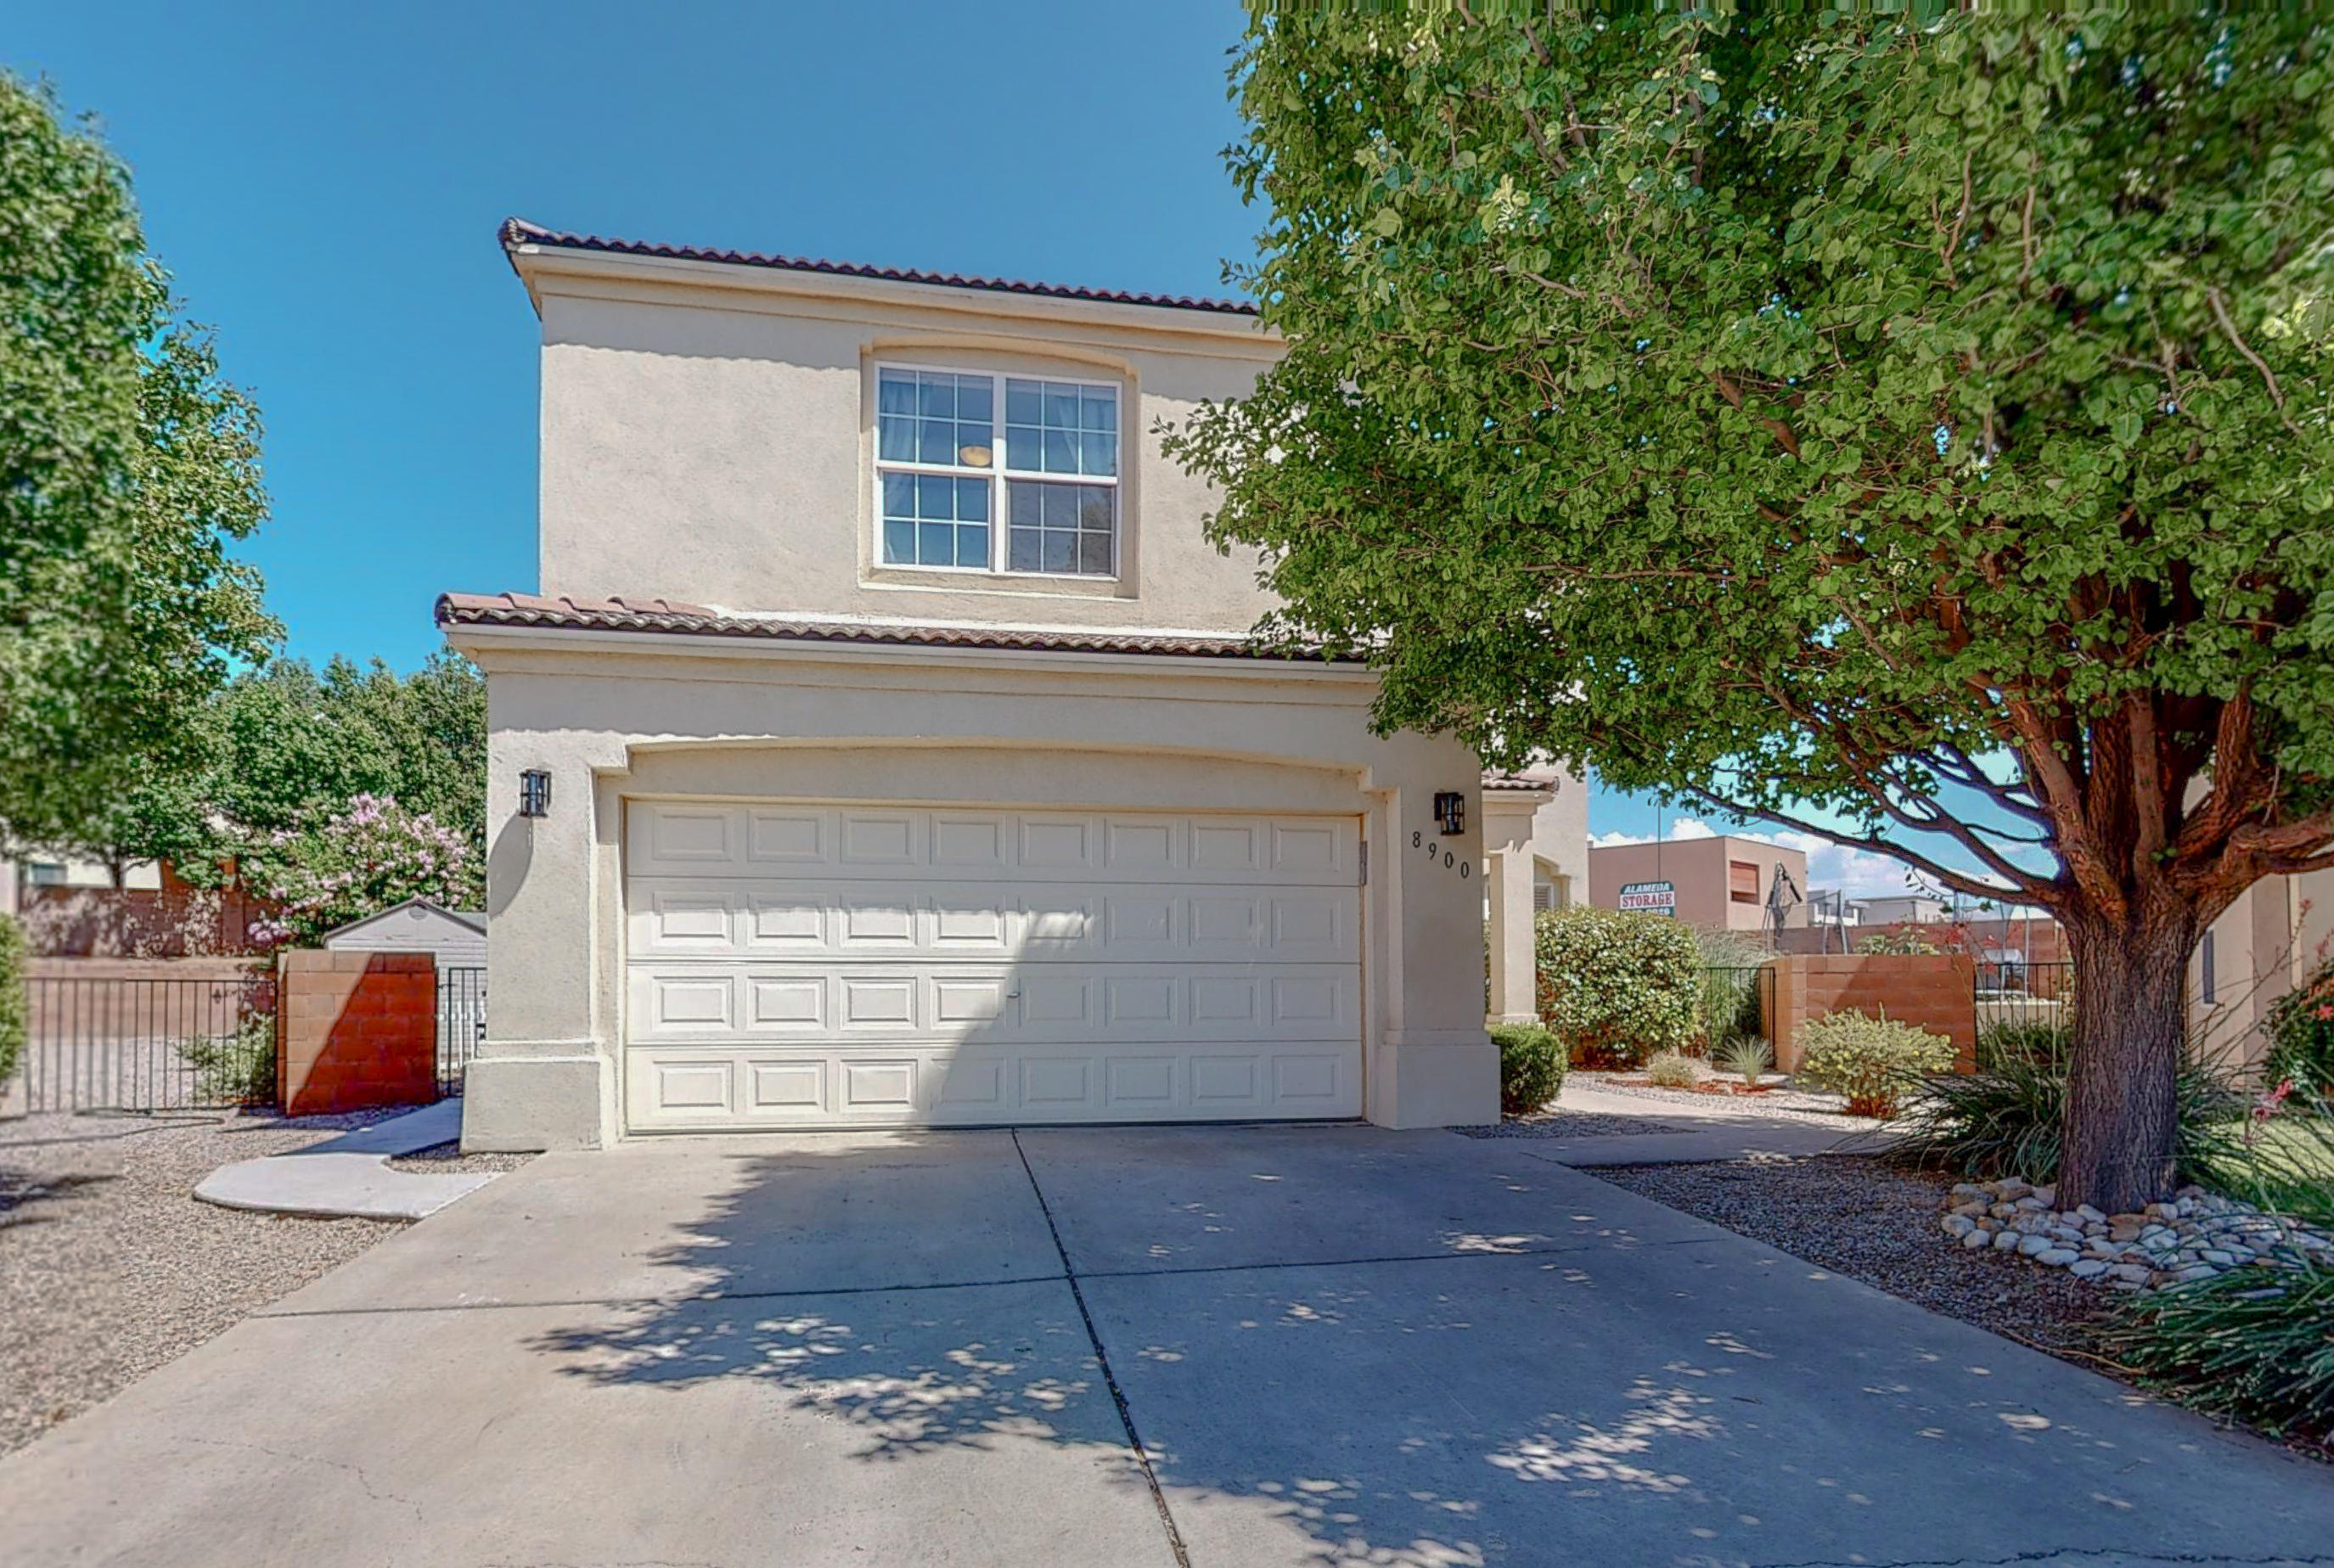 8900 LOCHNAGER Lane NE Property Photo - Albuquerque, NM real estate listing